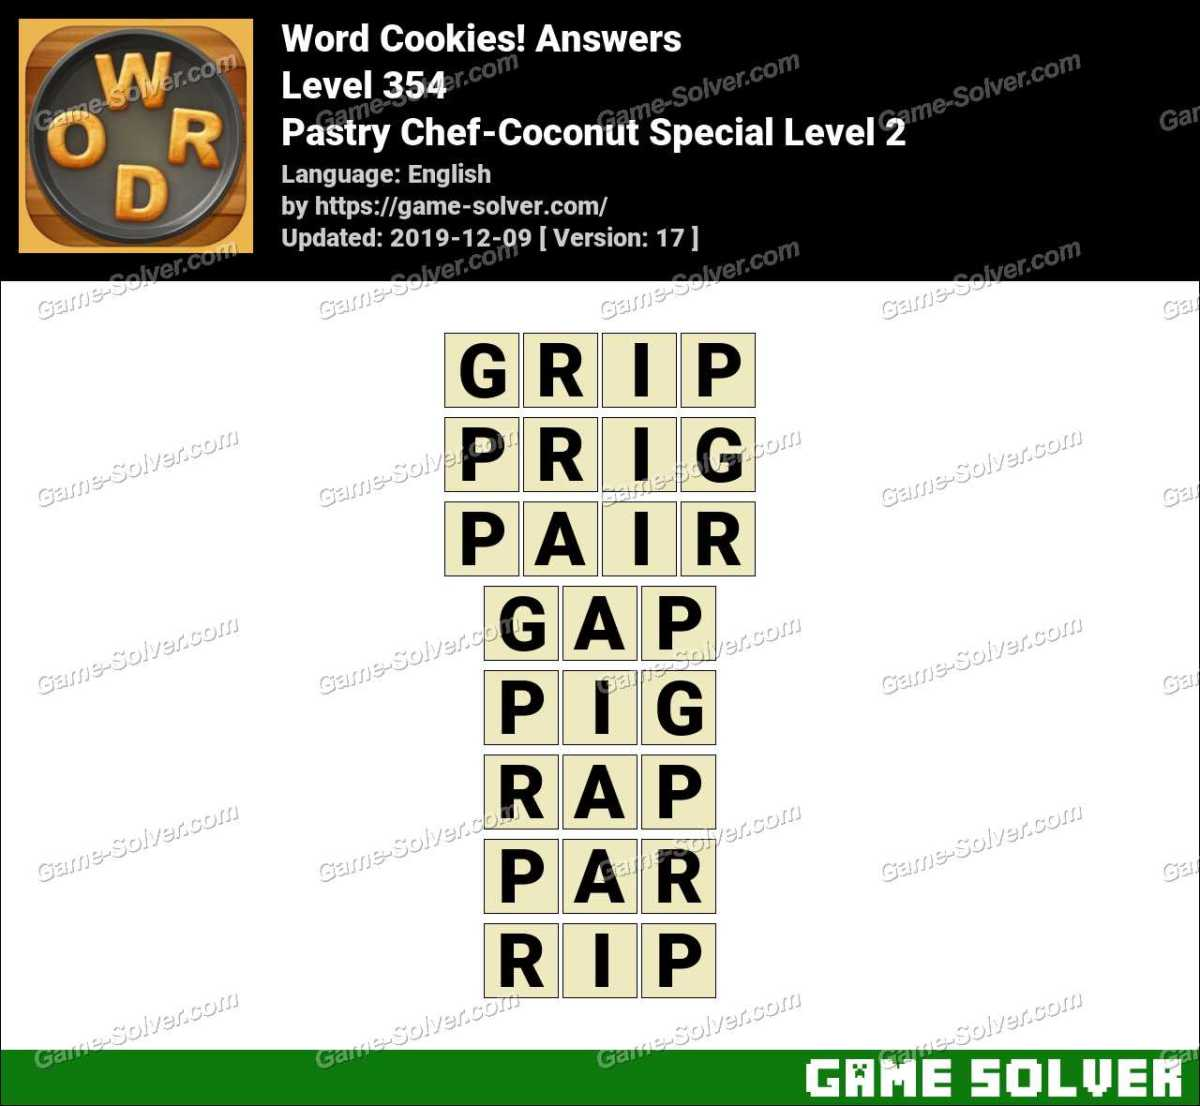 Word Cookies Pastry Chef-Coconut Special Level 2 Answers